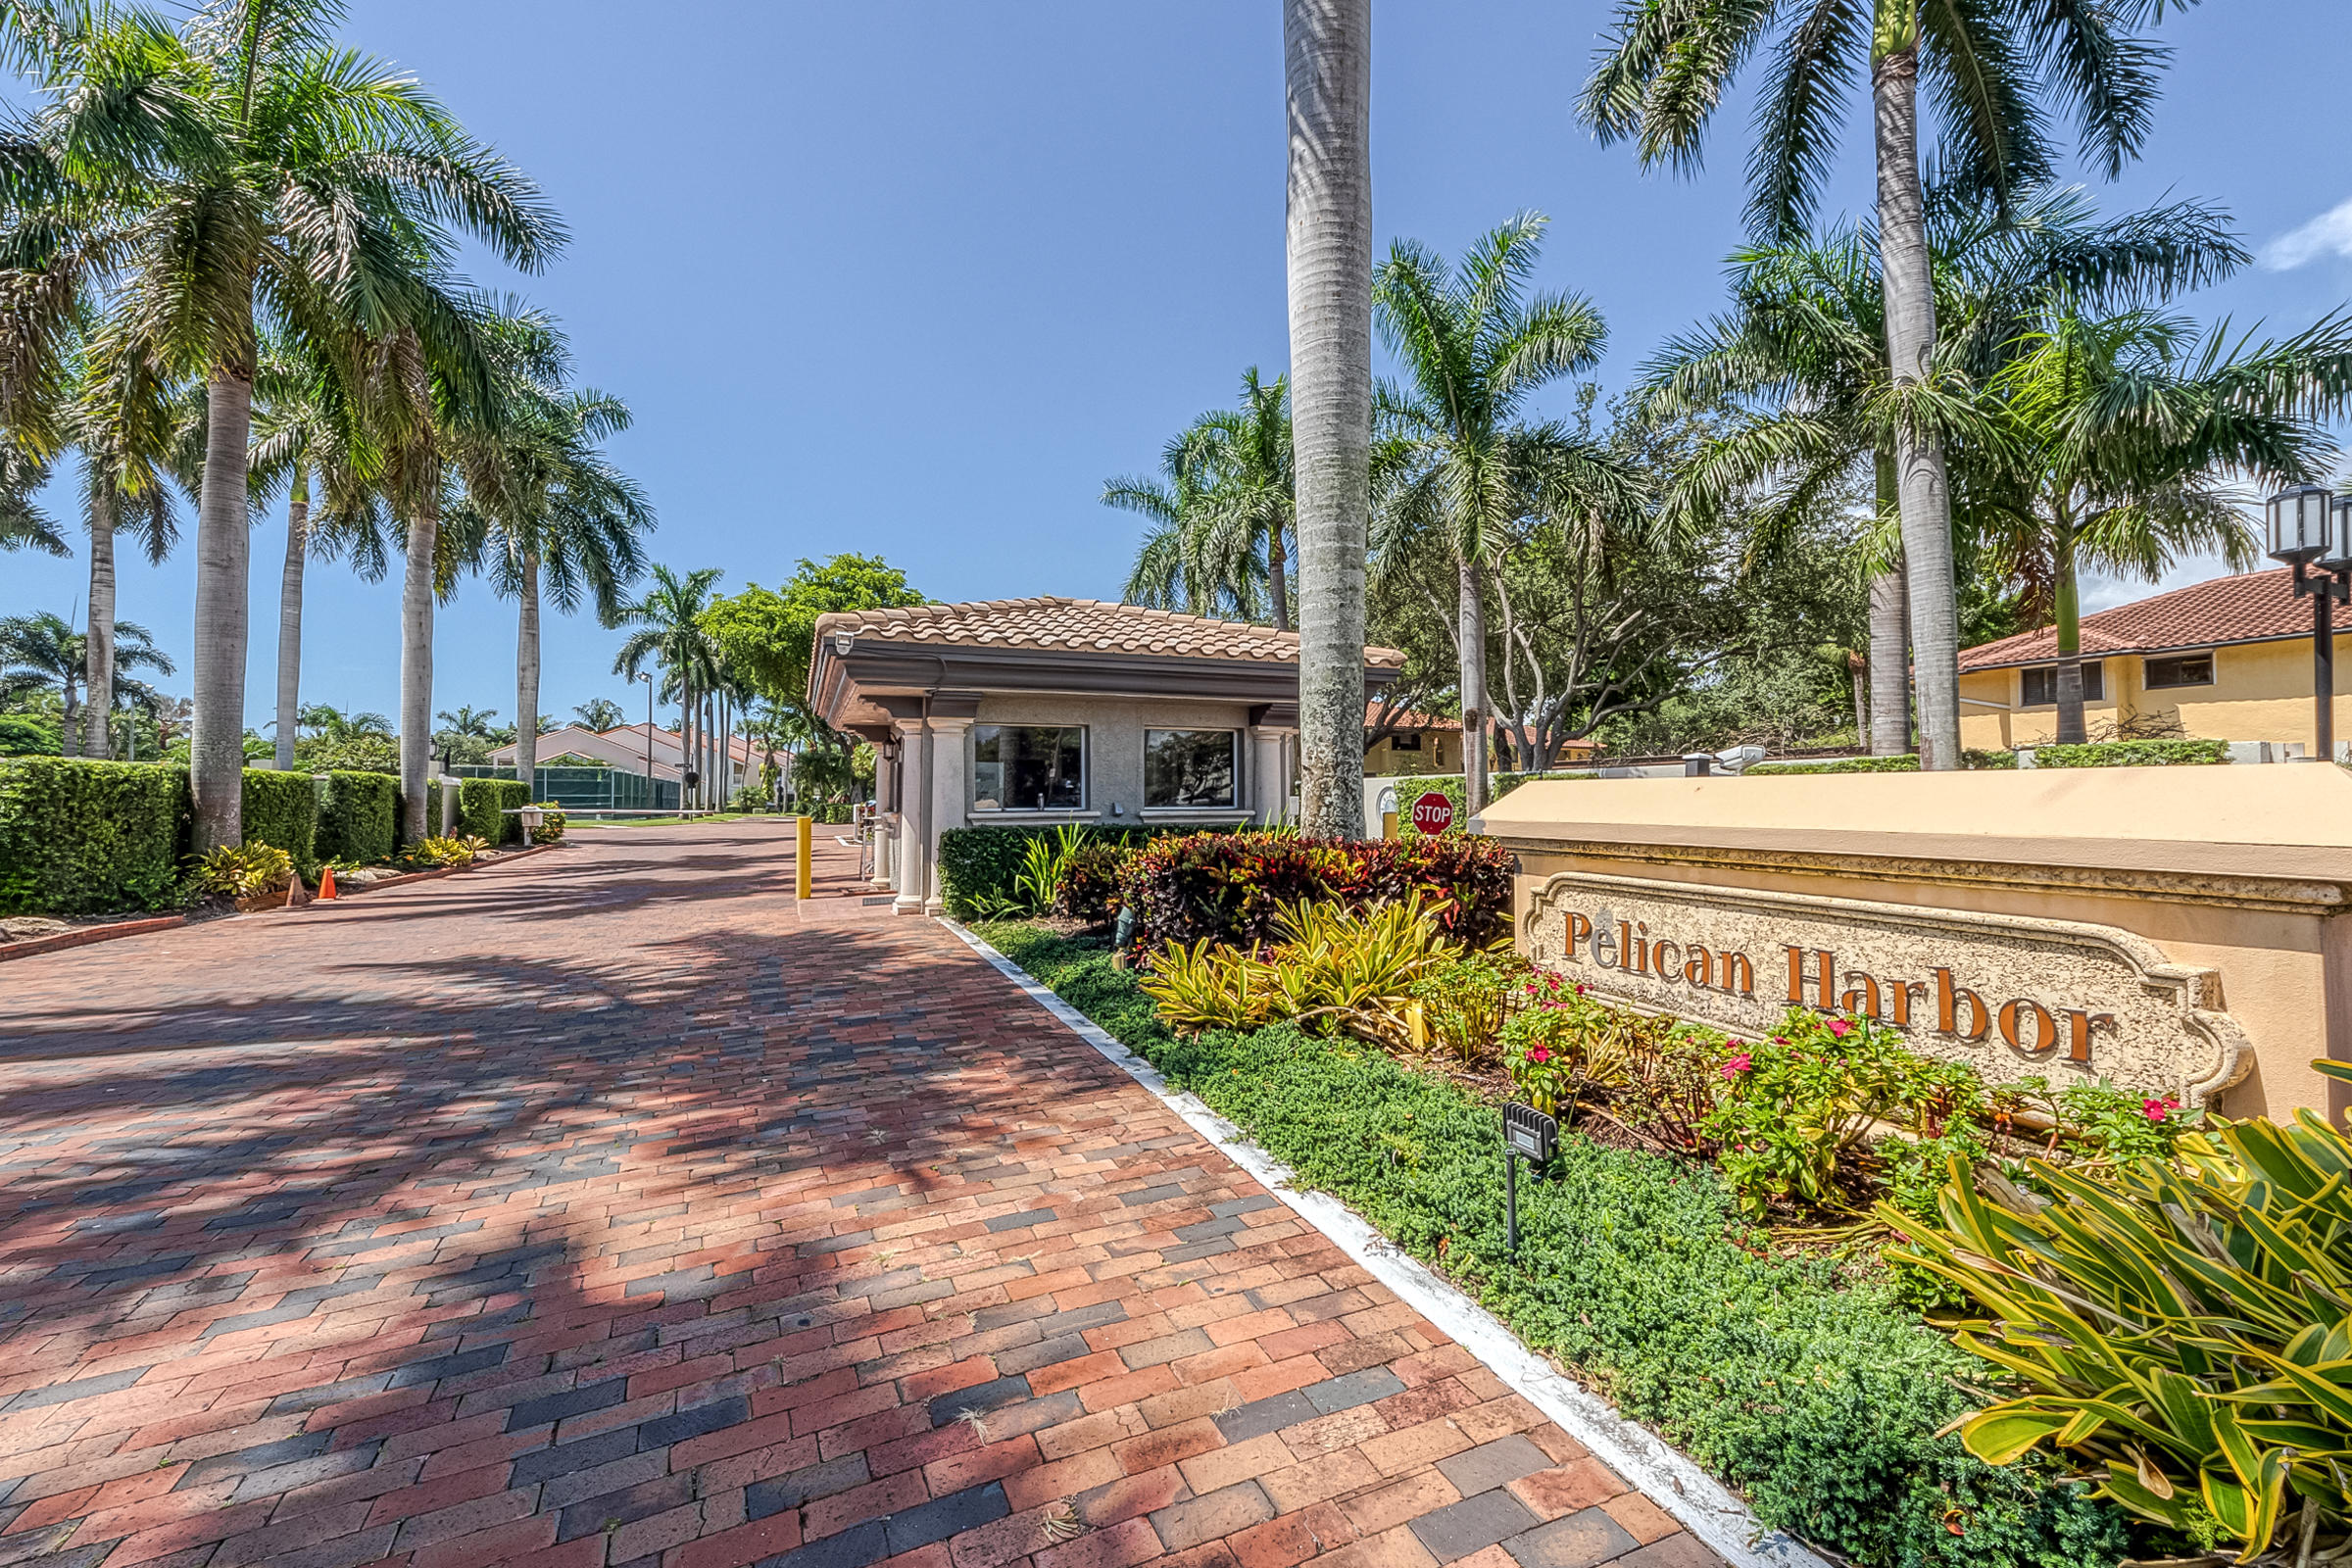 2 BR/2BA condo in Pelican Pointe, one of Delray Beach's most sought after waterfront communities This unit features an eat in kitchen, no carpet, plantation shutters & newer a/c and water heater. Sliding doors in the living room & master bedroom lead out to a lg screened patio facing north. Patio also has a storage closet. Lg master bdrm has two closets, one is a walk in.  Master bath has dual sinks & a roman tub..Accordion shutters on all windows & on patio. Pelican Pointe is a pet friendly & all ages community.  You can take a short walk to the intracoastal & feel secure with a  24 hr manned guard gate. Assigned, covered parking spot.  Dock space is available for sale or lease. Heated pool & tennis courts.  Minutes away is Trader Joe's an